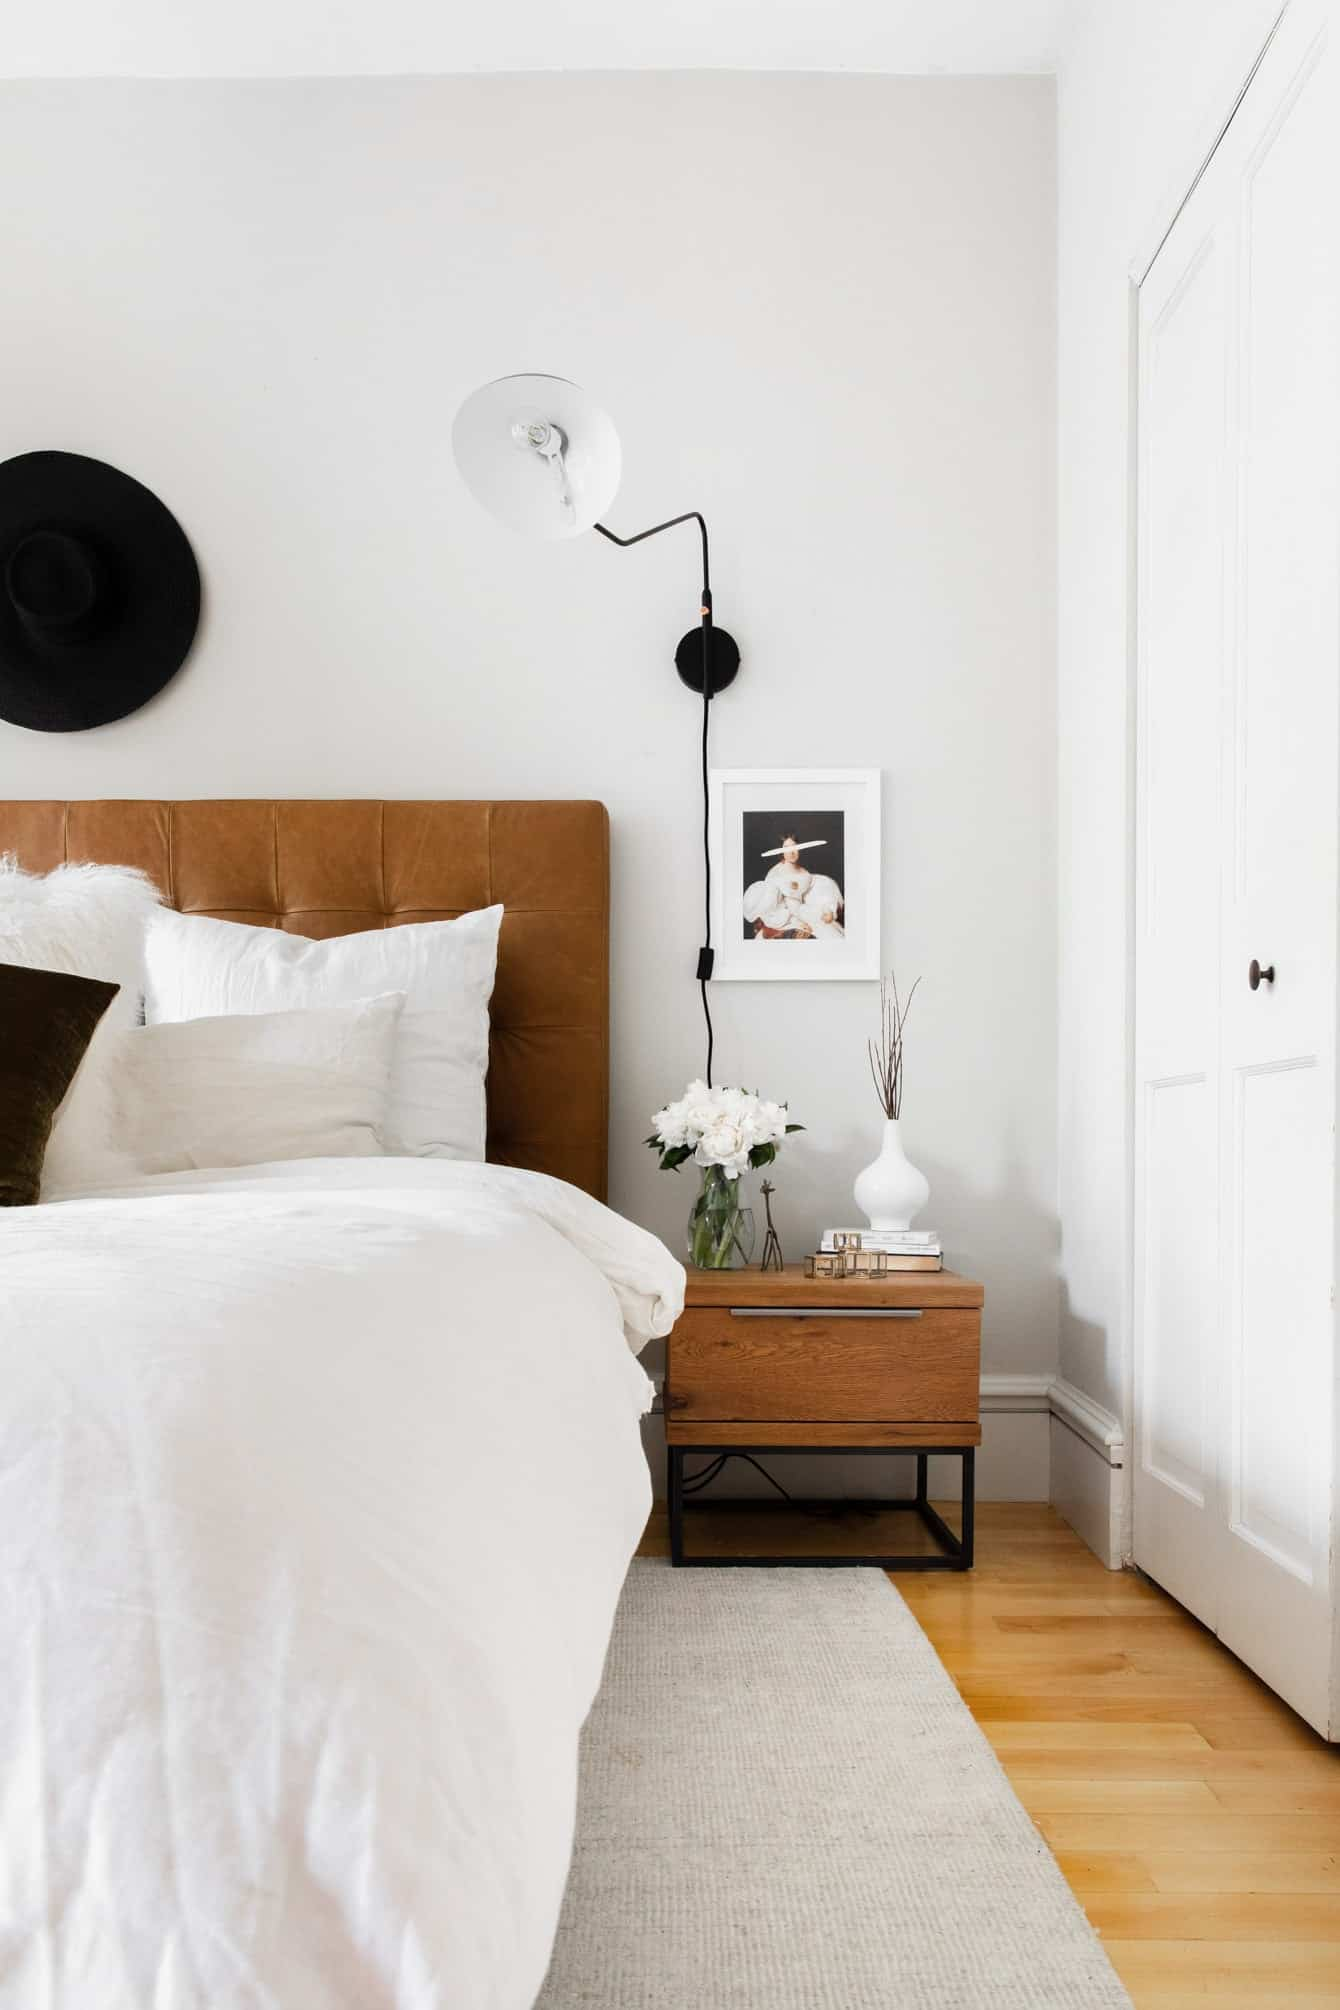 Everything about transforming your master bedroom into a modern and cozy sanctuary with some amazing pieces from Article!